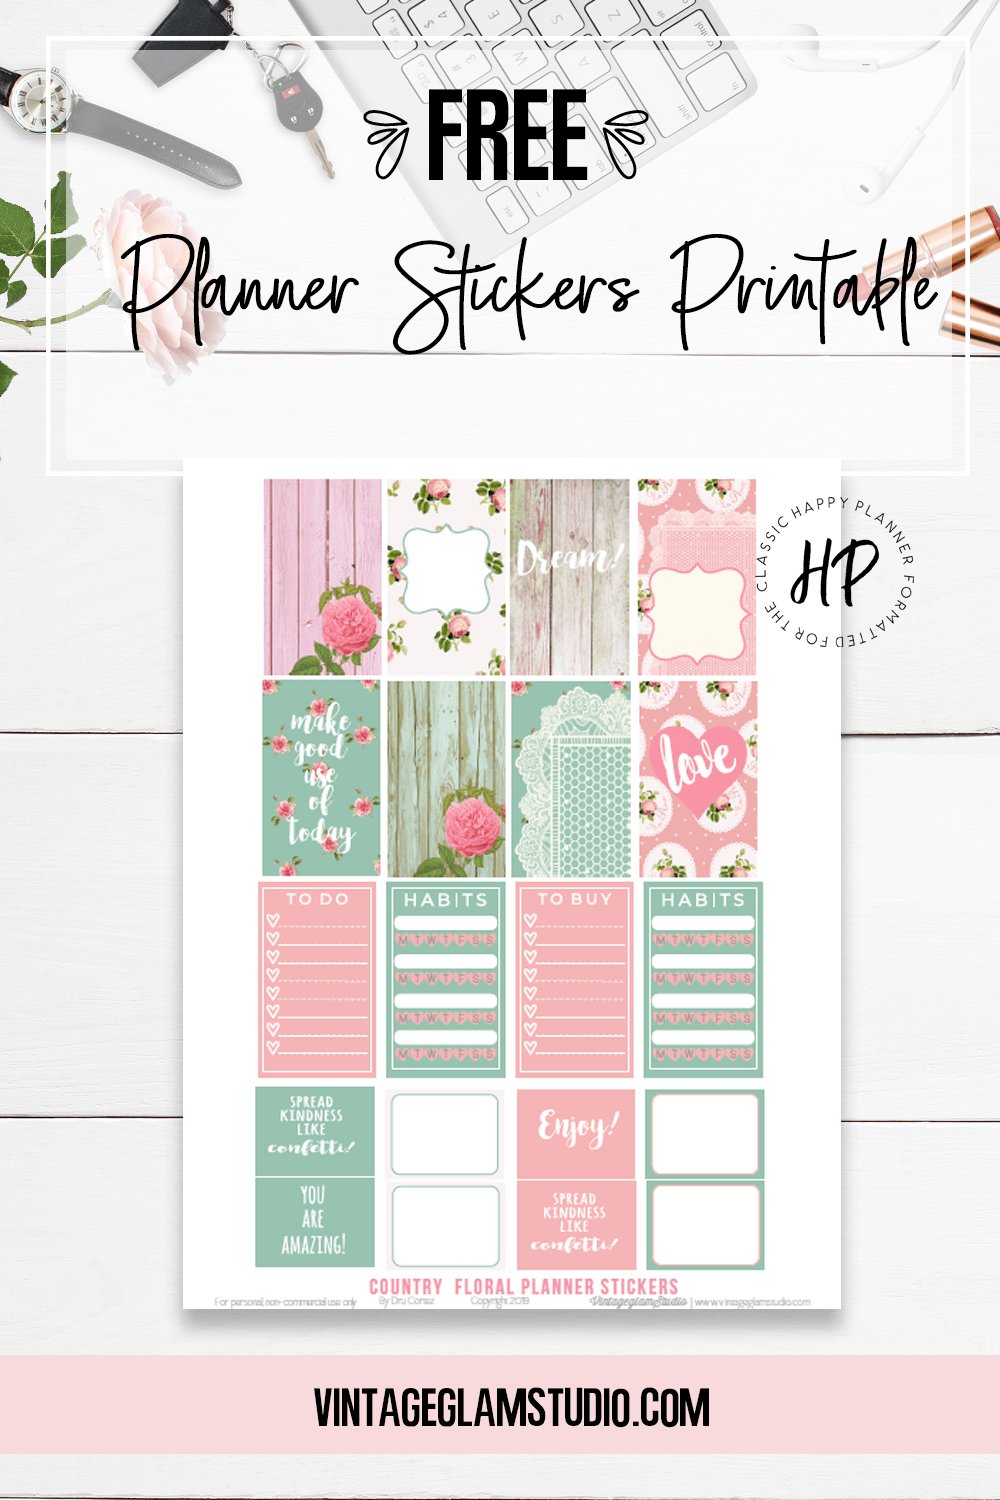 graphic about Happy Planner Free Printable Stickers referred to as satisfied planner Archives - Typical Glam Studio